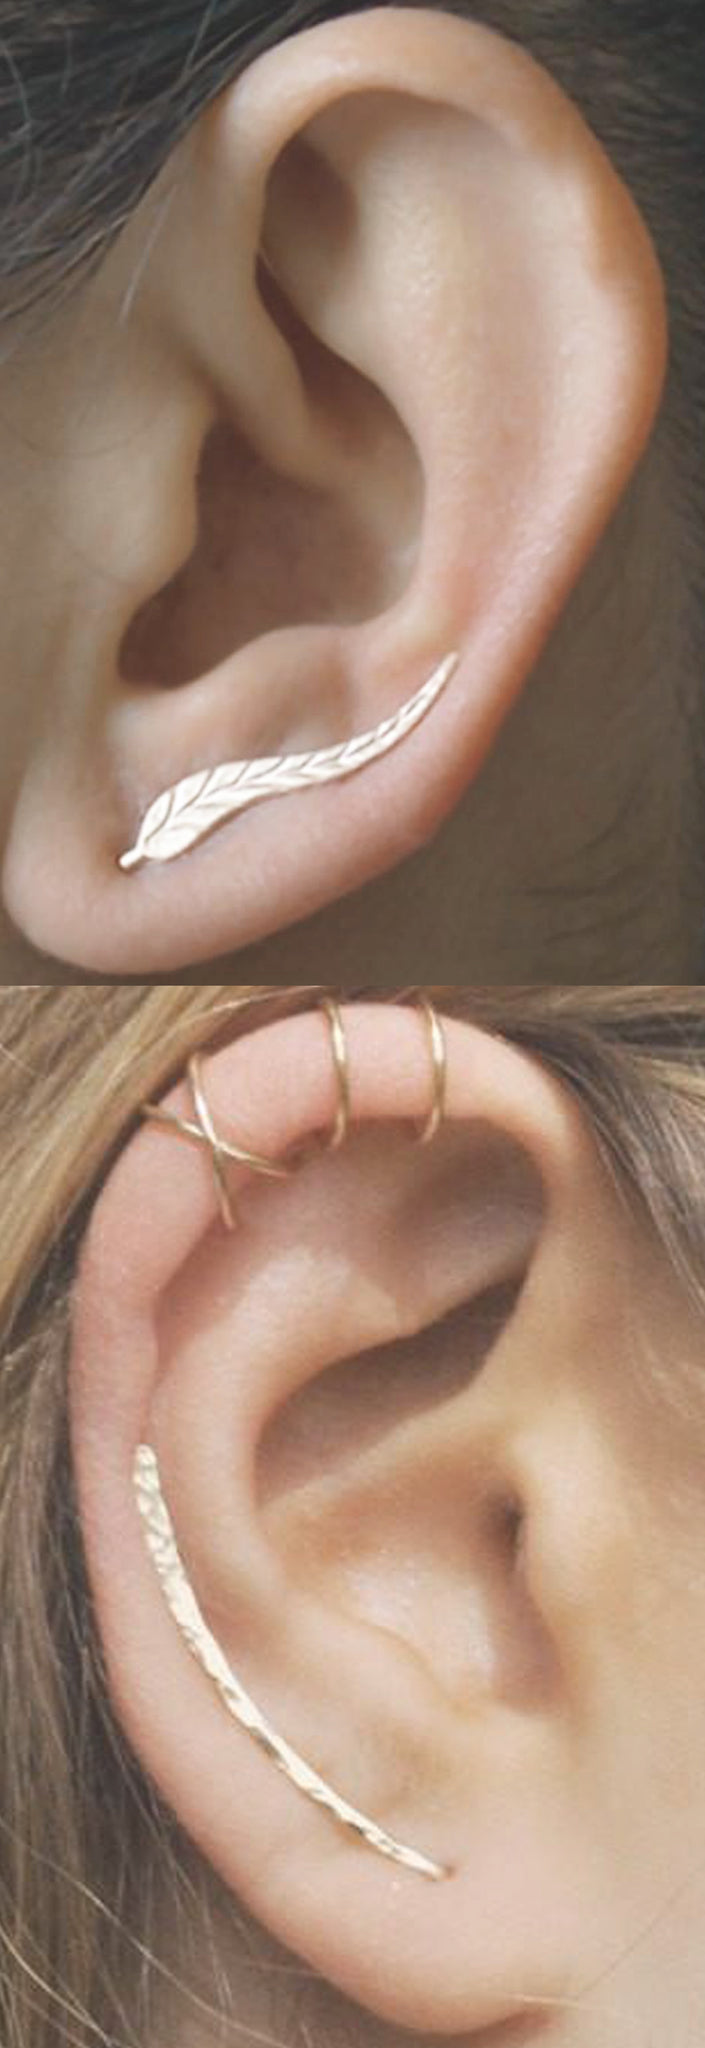 Classy Gold Simple Ear Piercing Ideas at MyBodiArt.com - Hammered Metal Leaf Ear Climber Earring - Cartilage Ring Cuffs